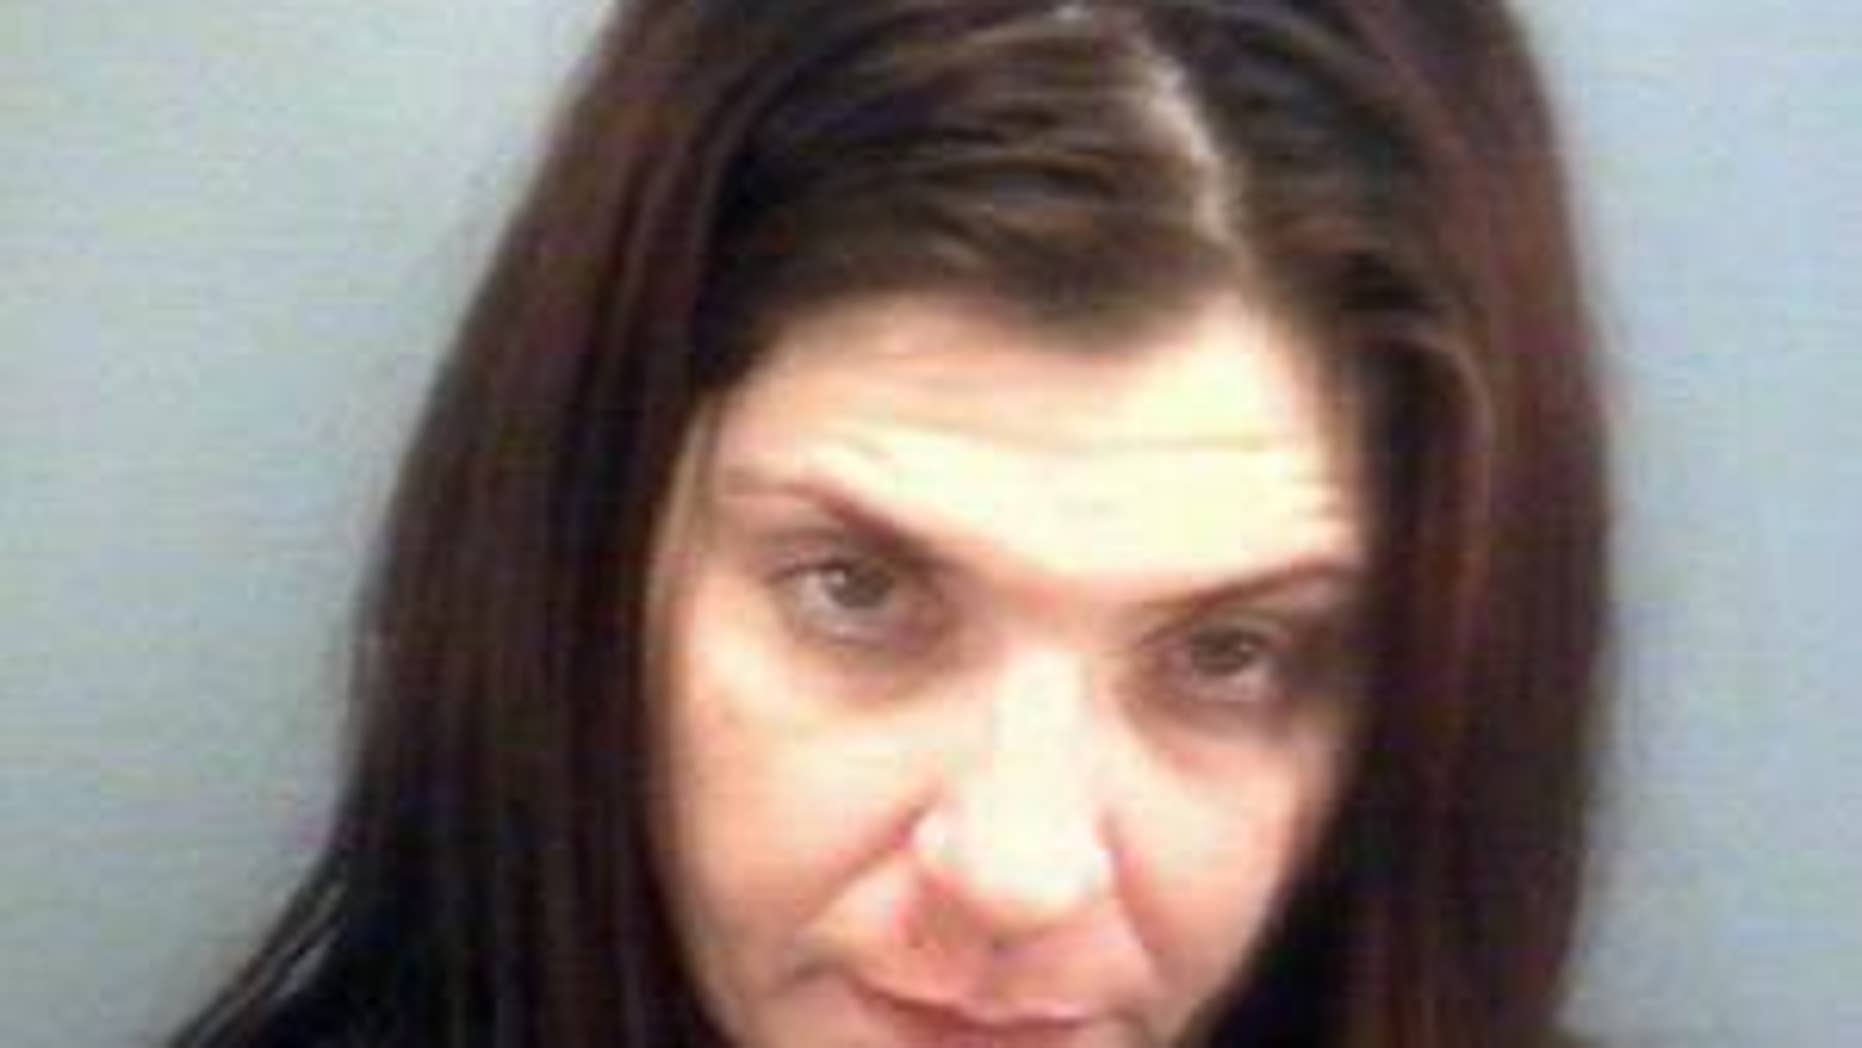 Nicole Foxx, 38, will be sentenced in July after being convicted of voluntary manslaughter, authorities said.